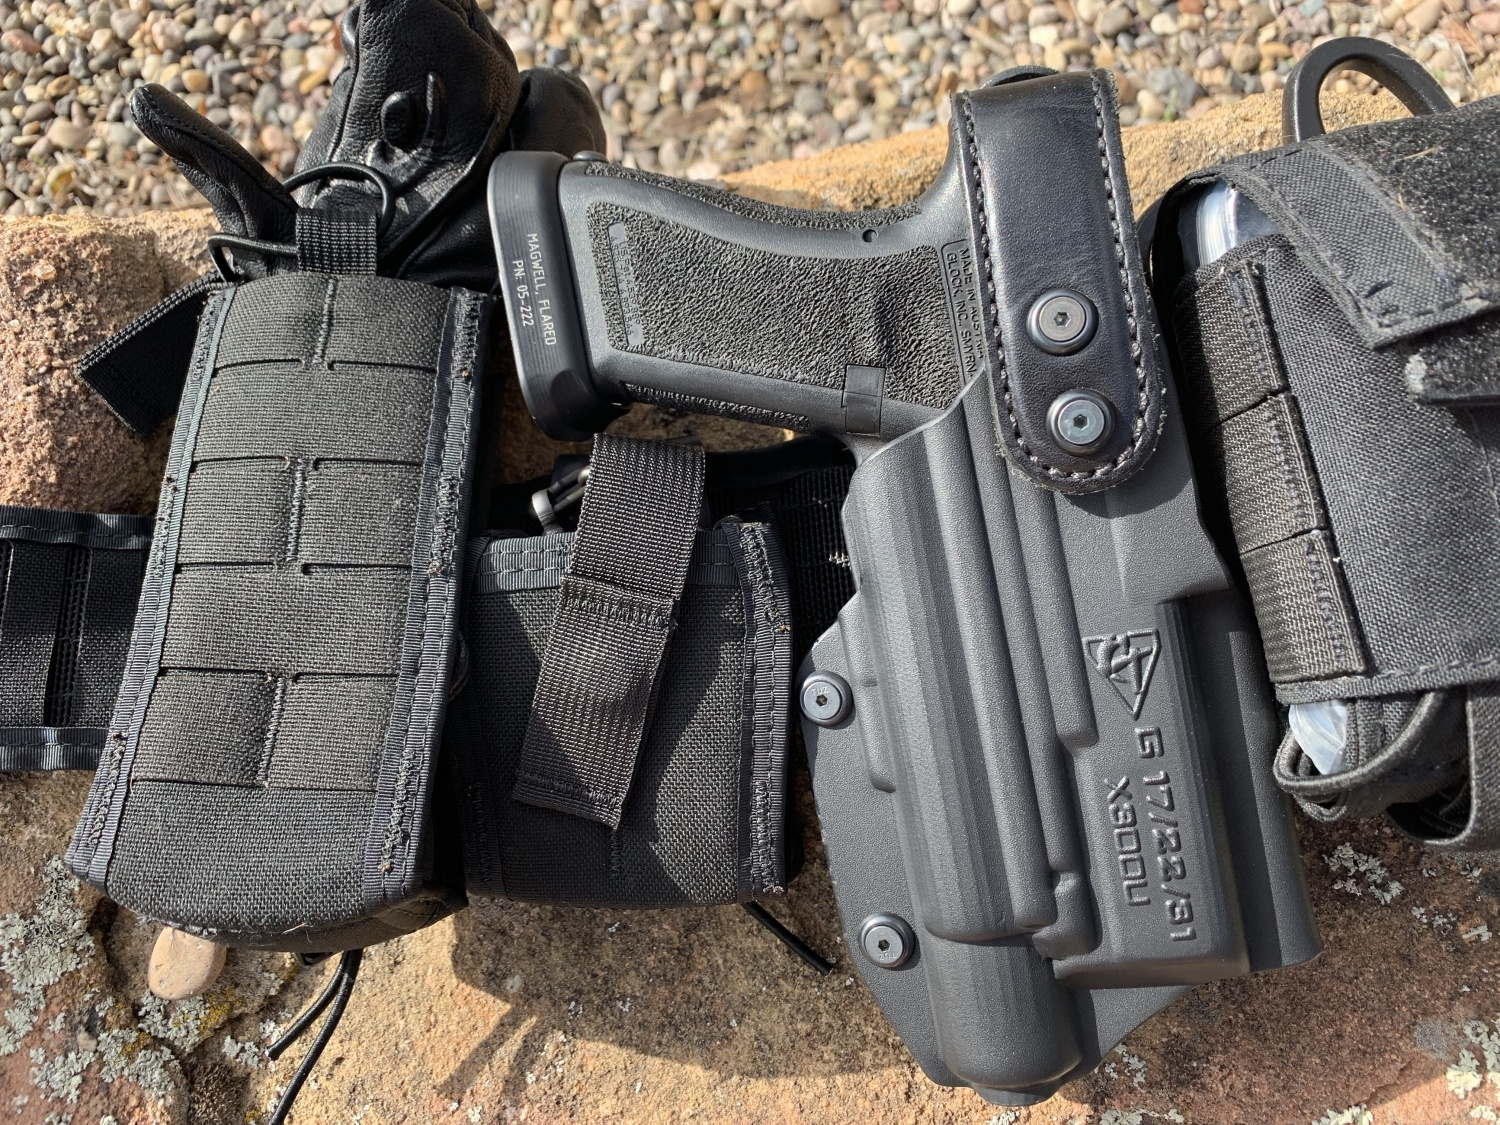 The configuration of the holster is clearly imprinted on the side so there is no question. This fits my G17 with X300u. Also note the retention strap—it is well made and very solid.